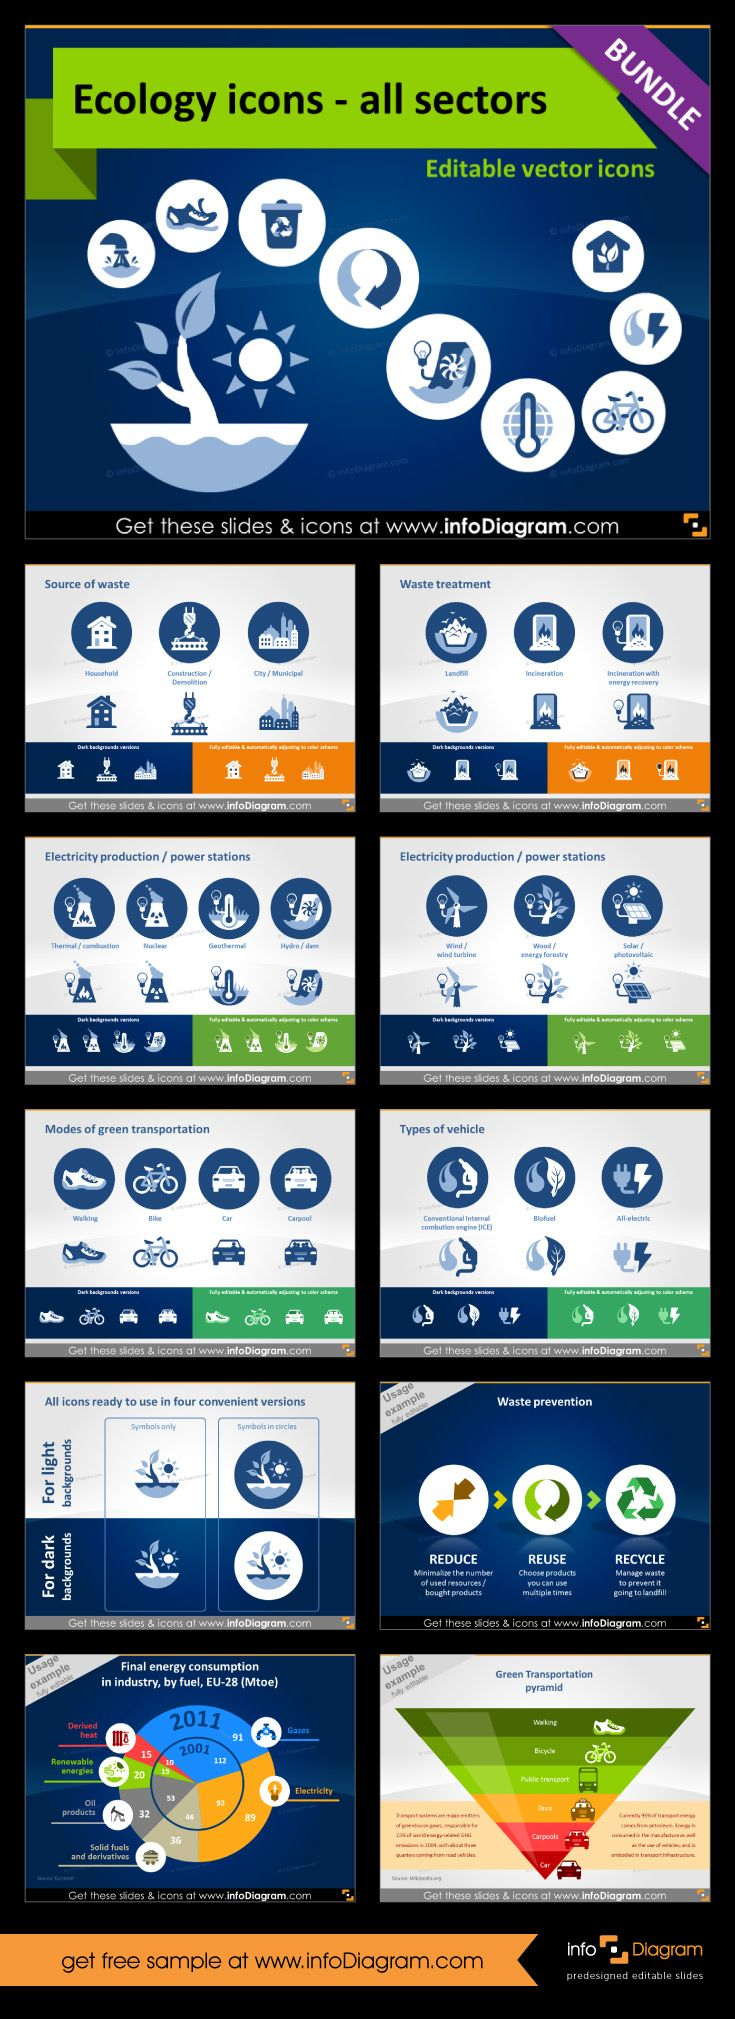 Ecology icons and visuals for ecology related presentations. Bundle of three subsets: Energy and Ecosystem + Waste + Sustainable Transport and Architecture.  74 editable pictogram symbols for various green energy, resources, waste industry and ecosystems concepts.